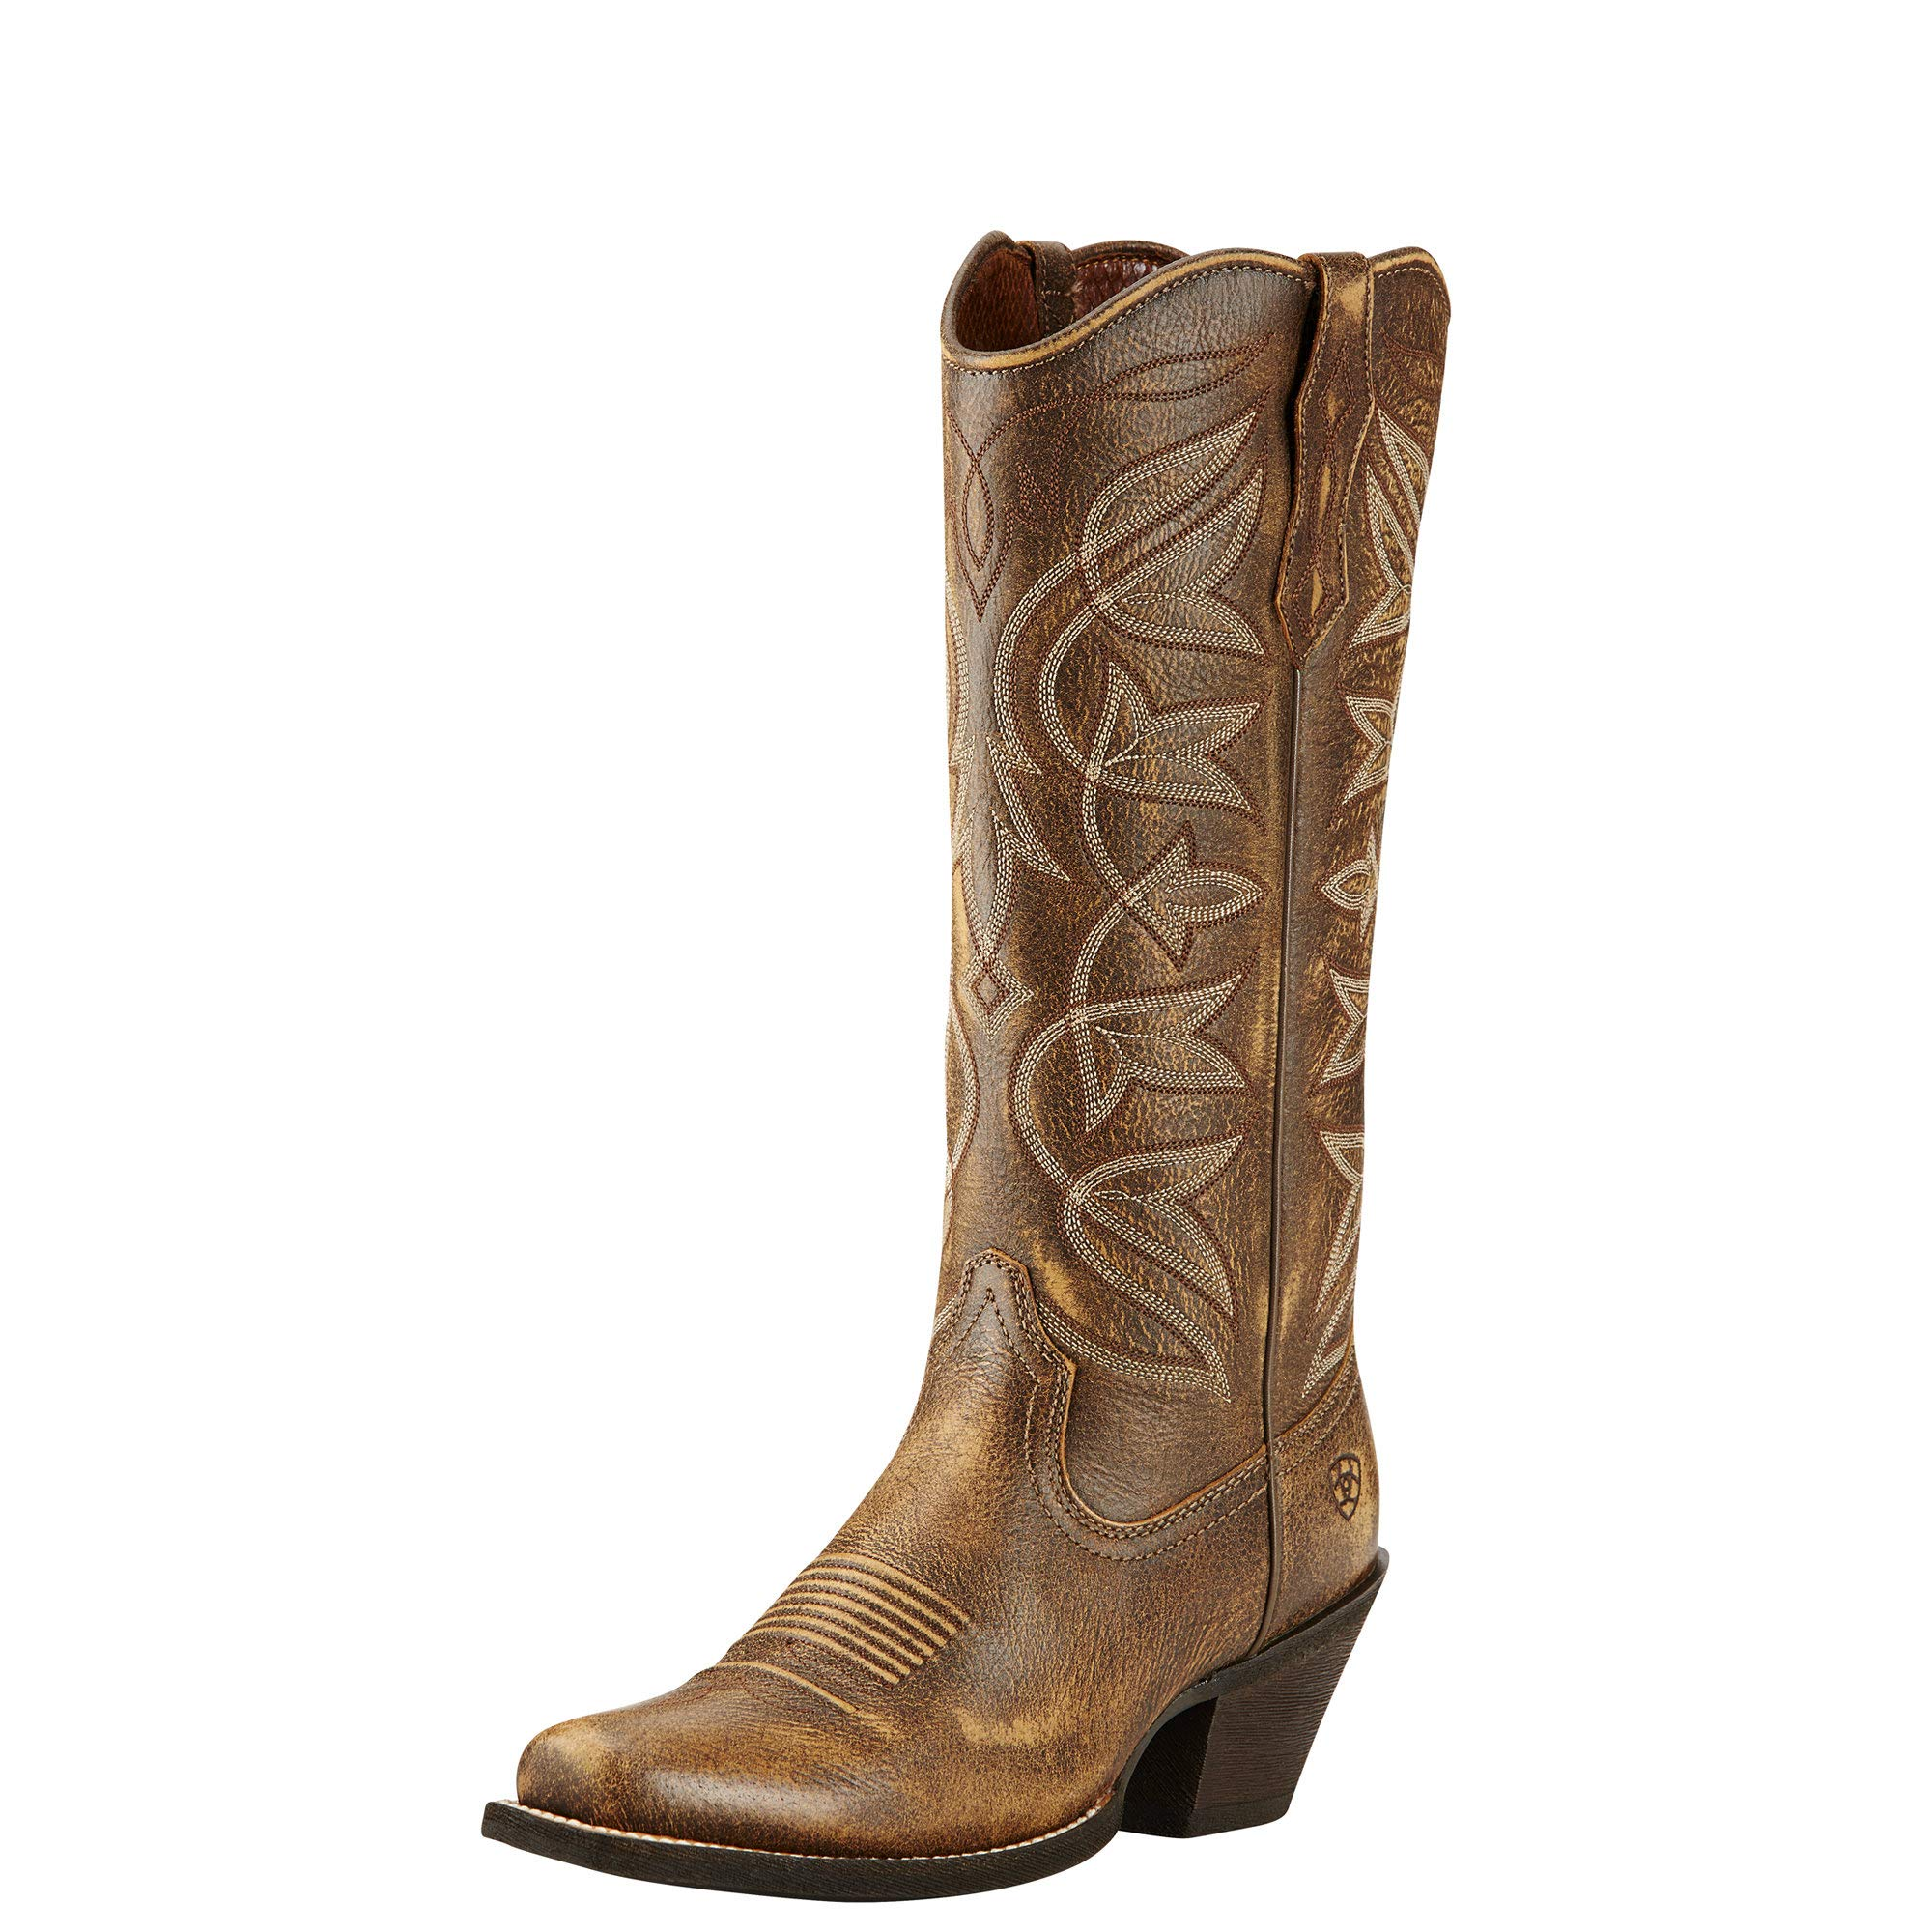 Ariat Women's Sheridan Western Cowboy Boot, Vintage Bomber, 6.5 B US by ARIAT